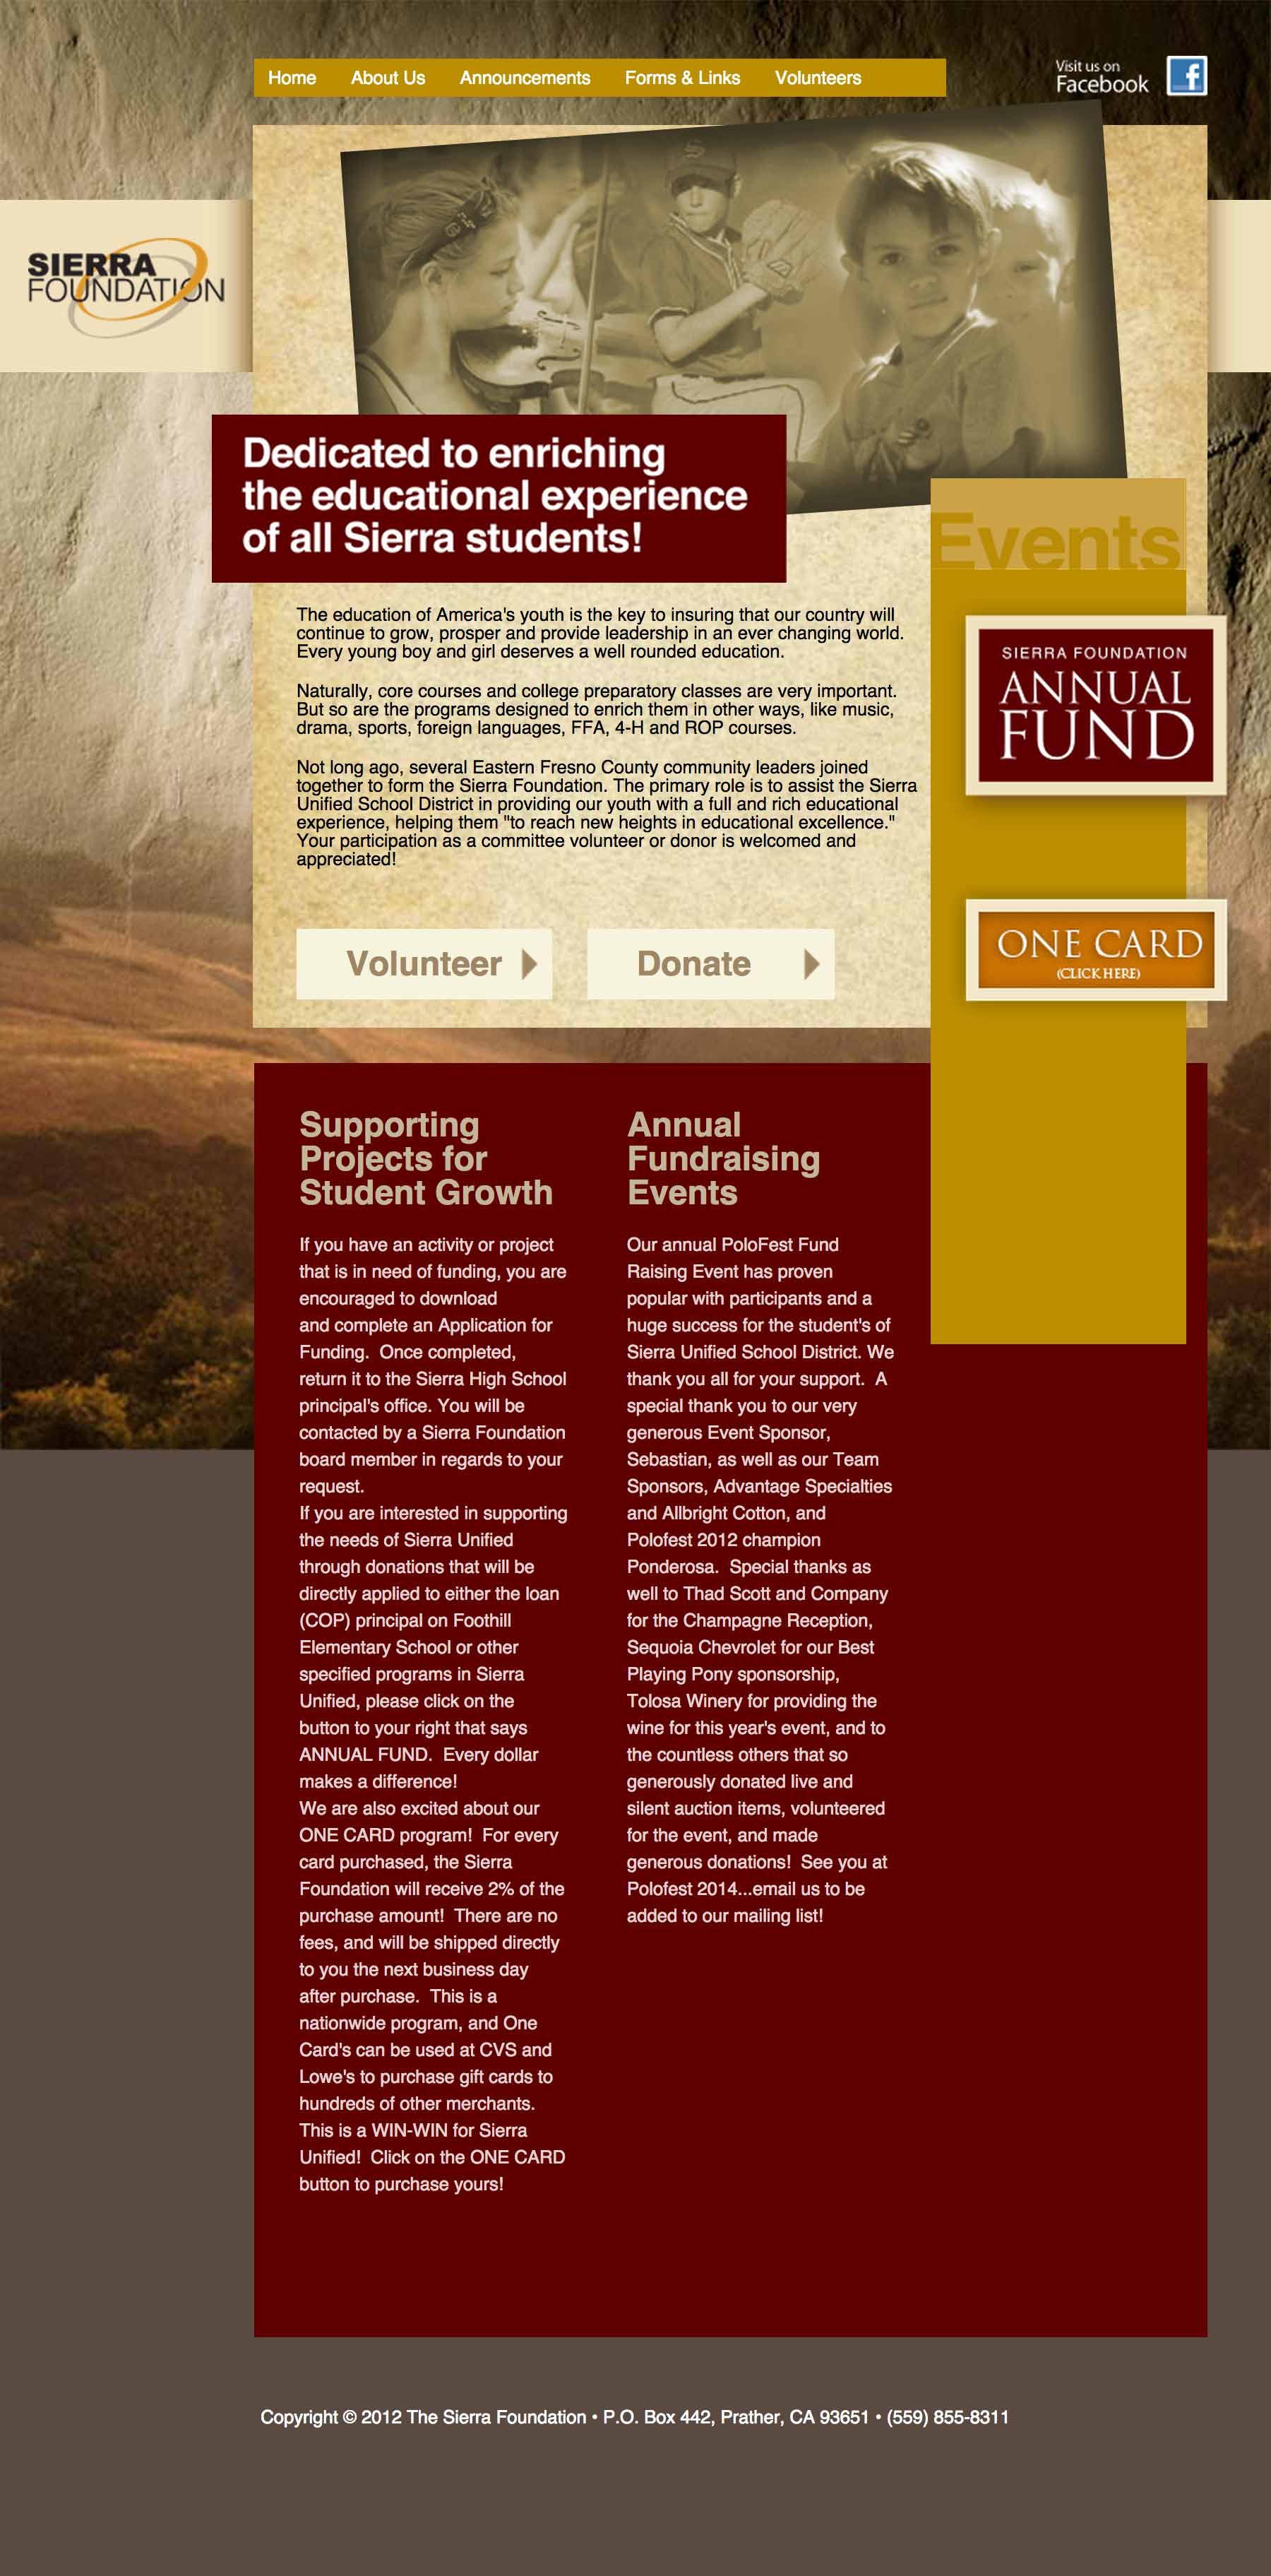 Screen shot of the The Sierra Foundation web site by Lee Powers.